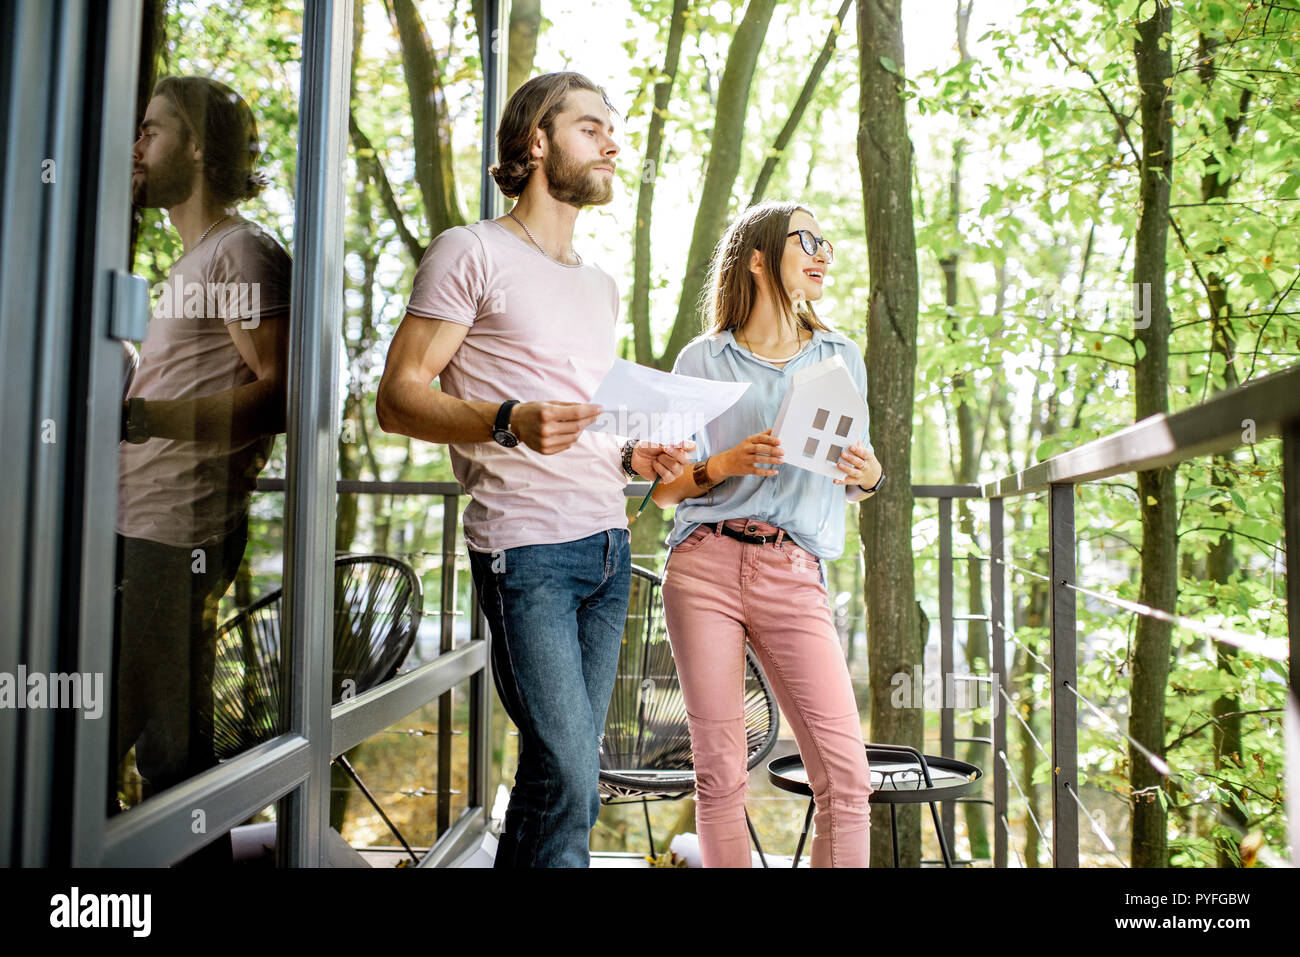 Young creative couple of architechts or designers working with house model and blueprints on the balcony of their office in the forest Stock Photo